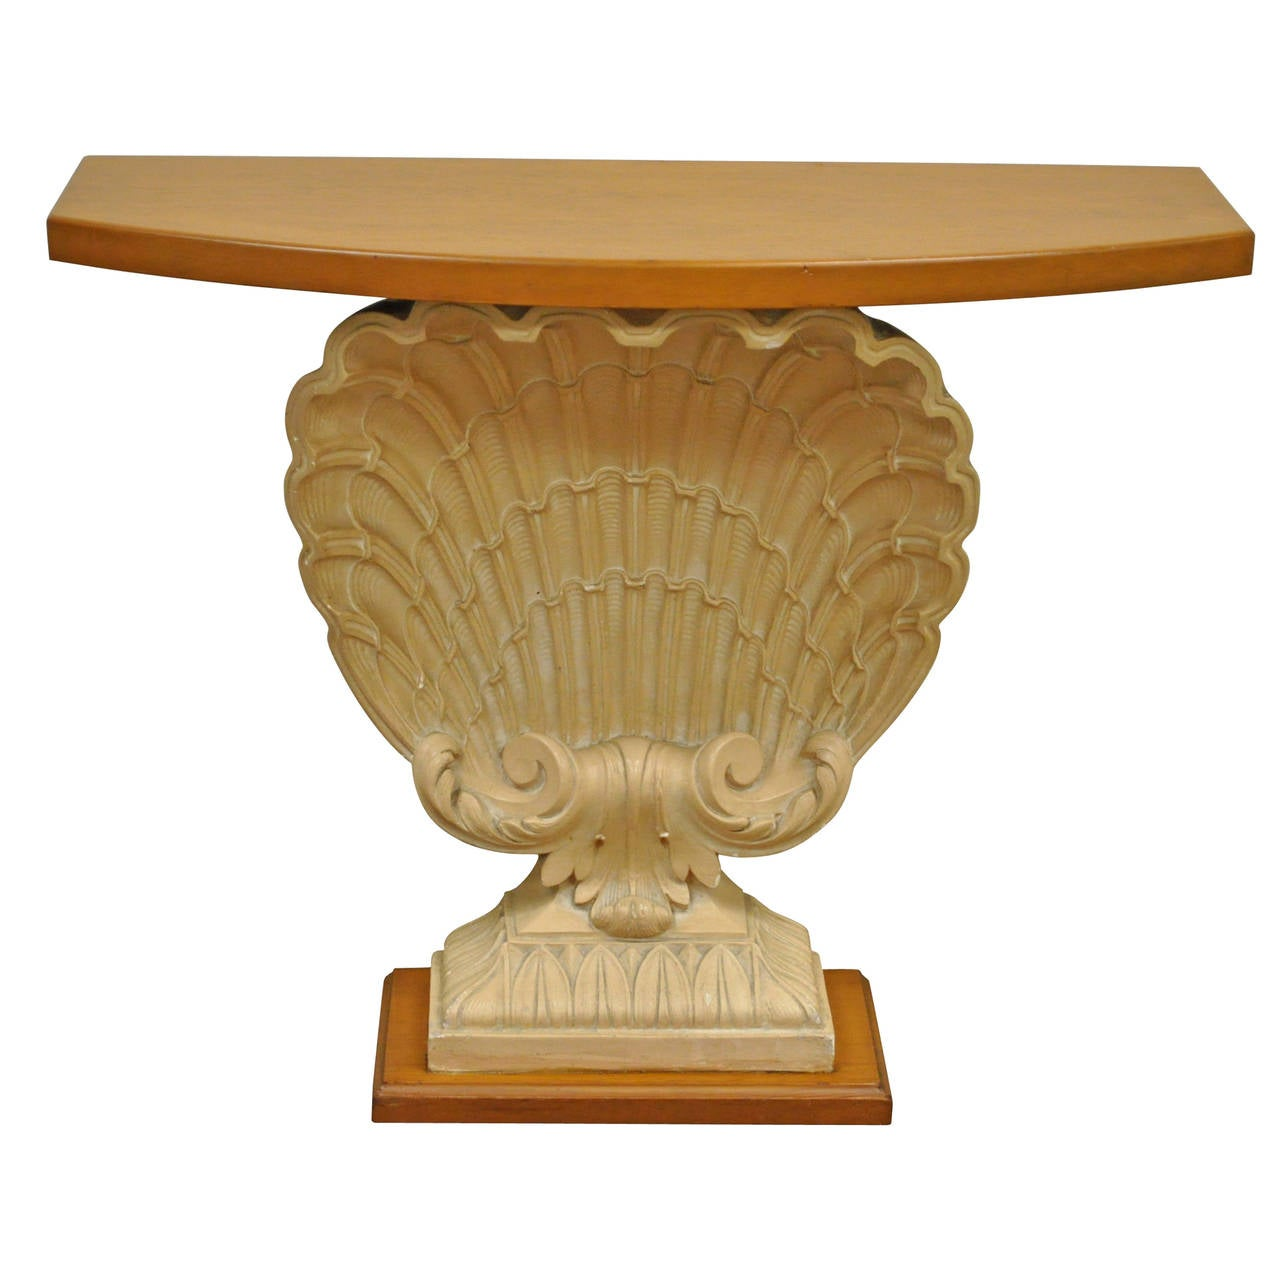 Shell Form Console Table Attributed to Grosfeld House, circa 1940s